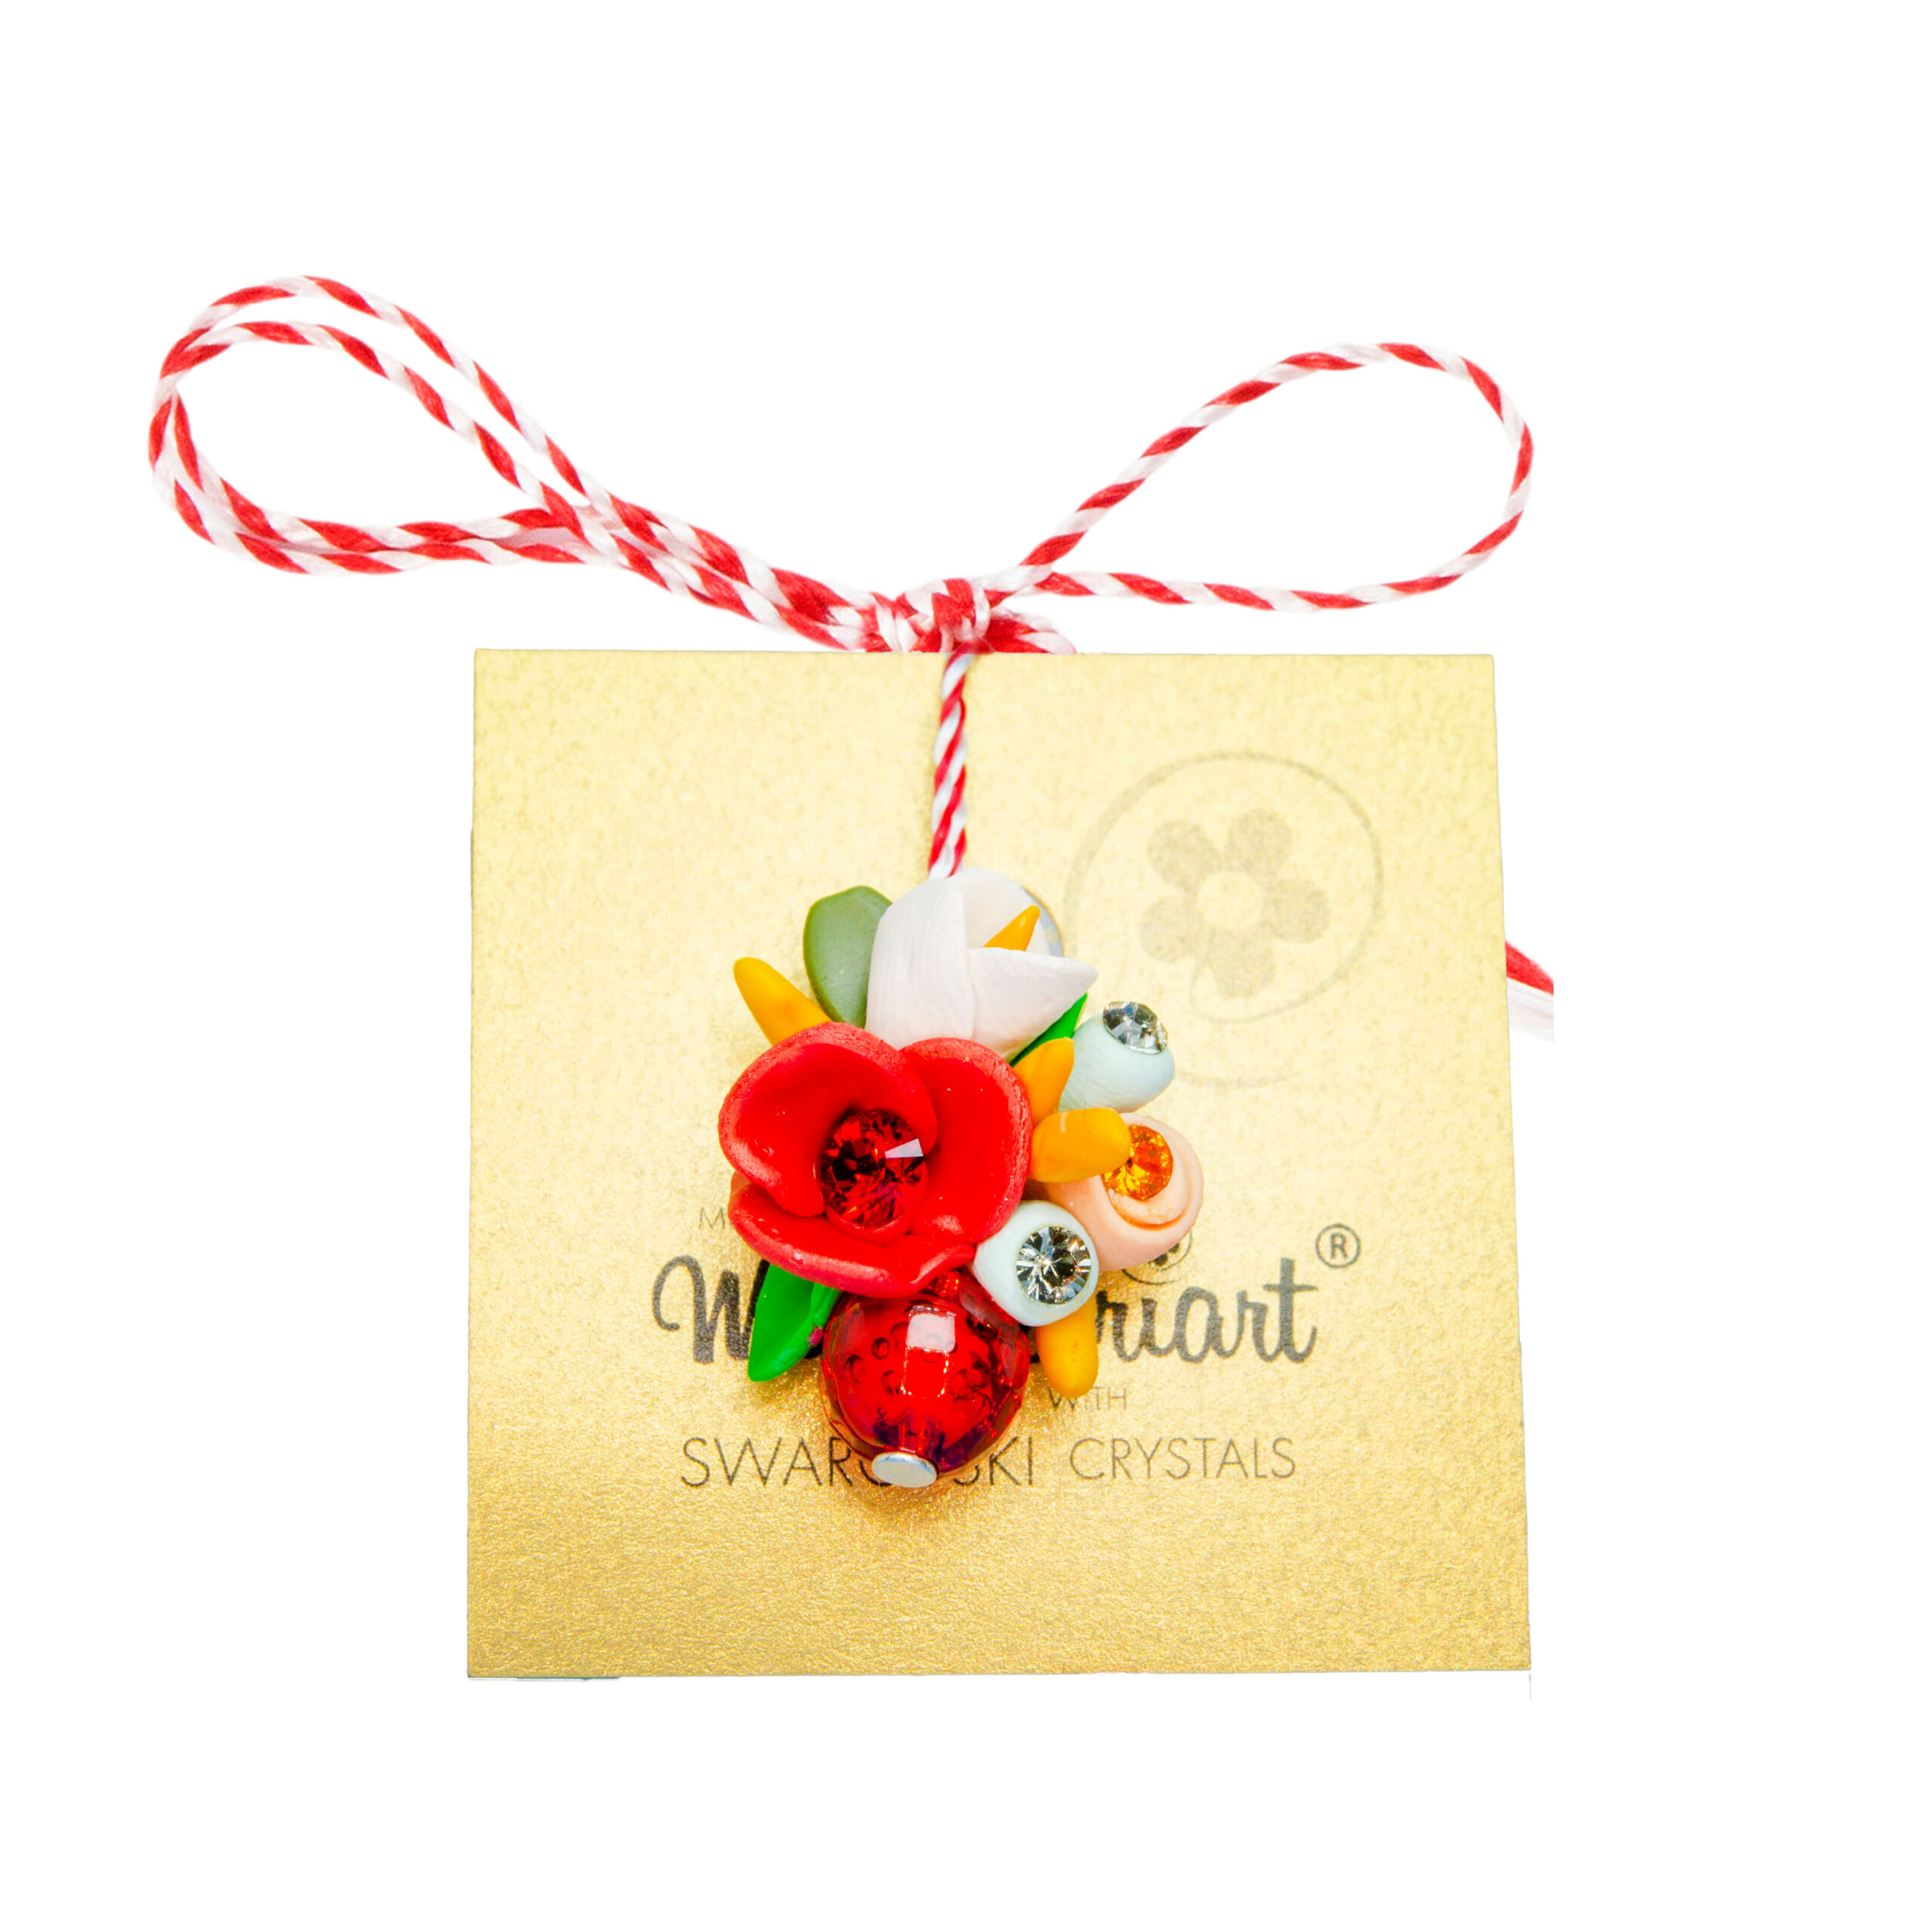 Martisor, Miidefloriart, model 45